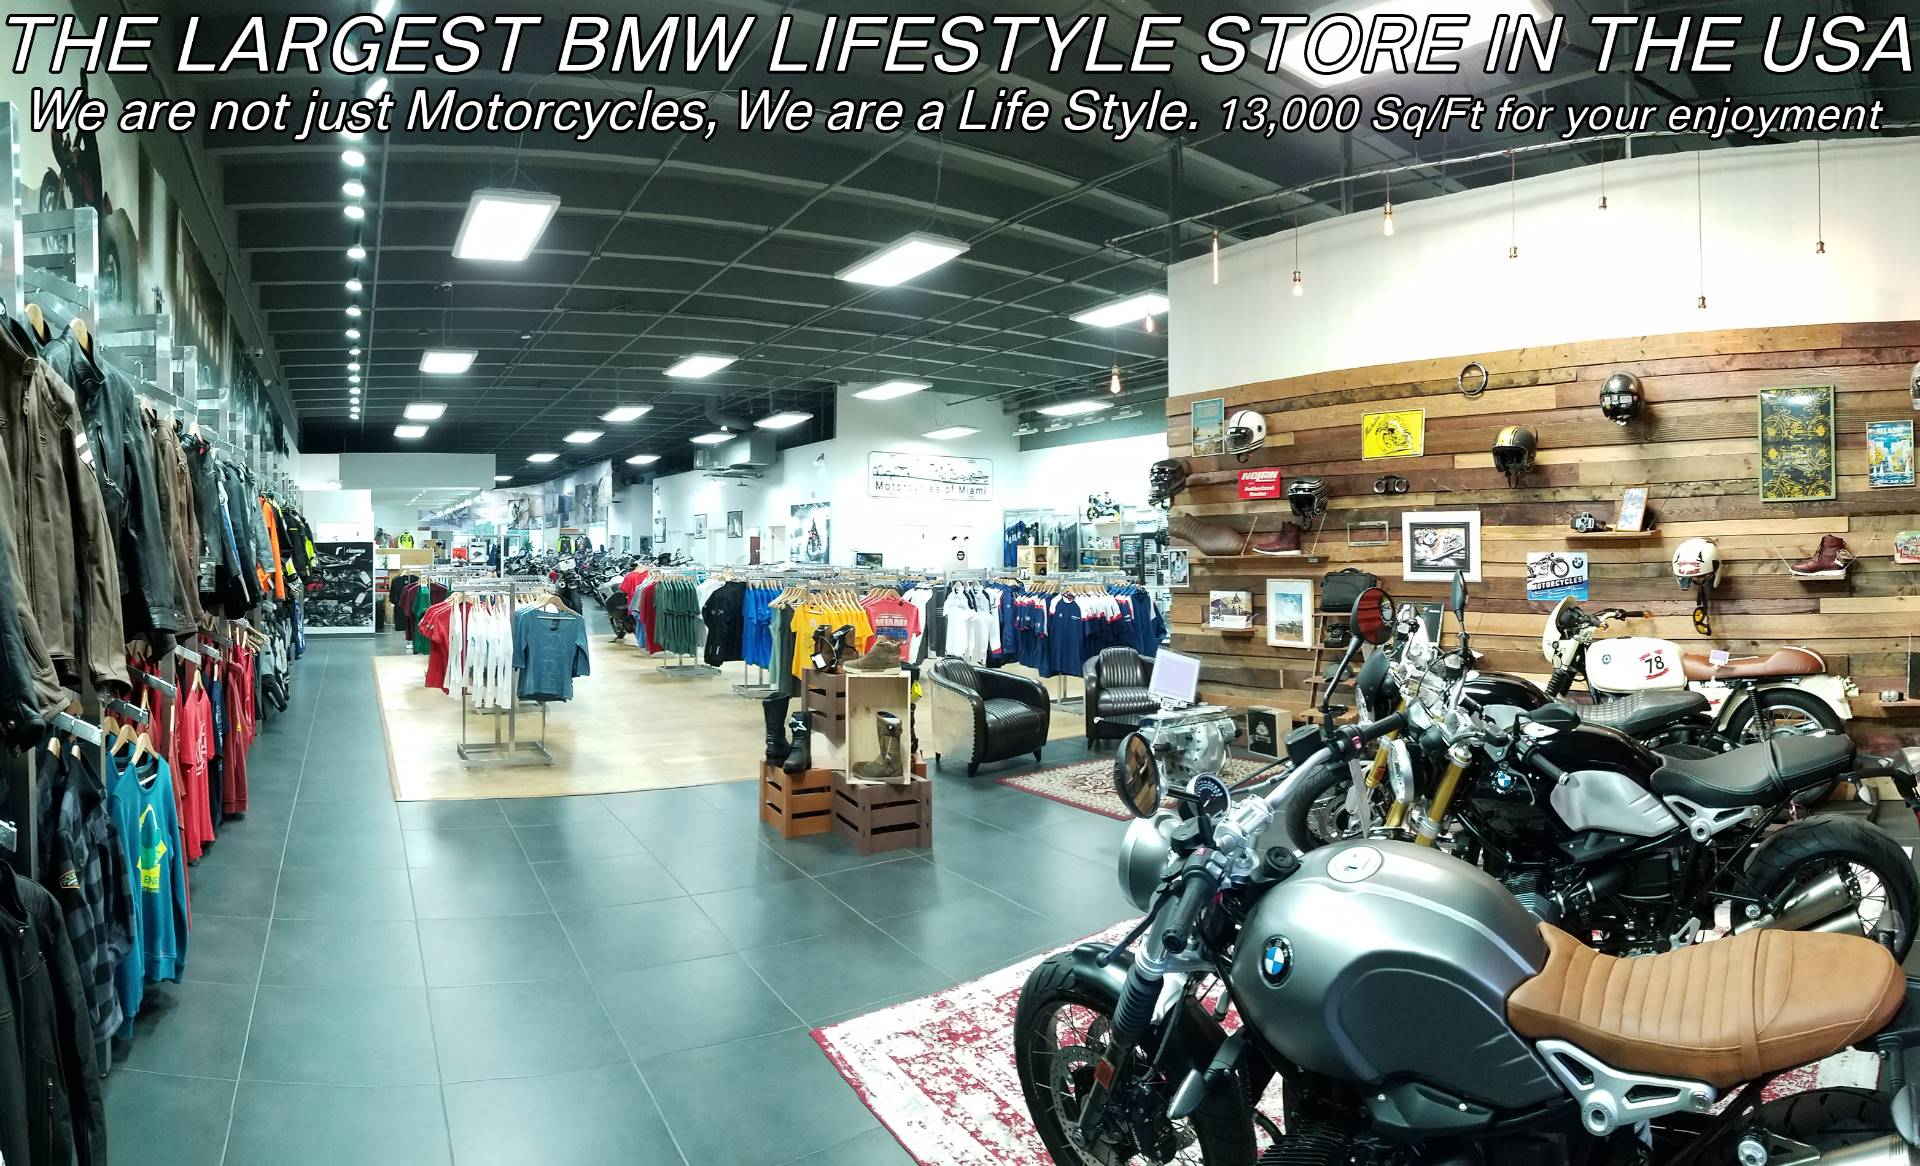 BMW Motorcycles of Miami, Motorcycles of Miami, Motorcycles Miami, New Motorcycles, Used Motorcycles, pre-owned. #BMWMotorcyclesOfMiami #MotorcyclesOfMiami - Photo 25